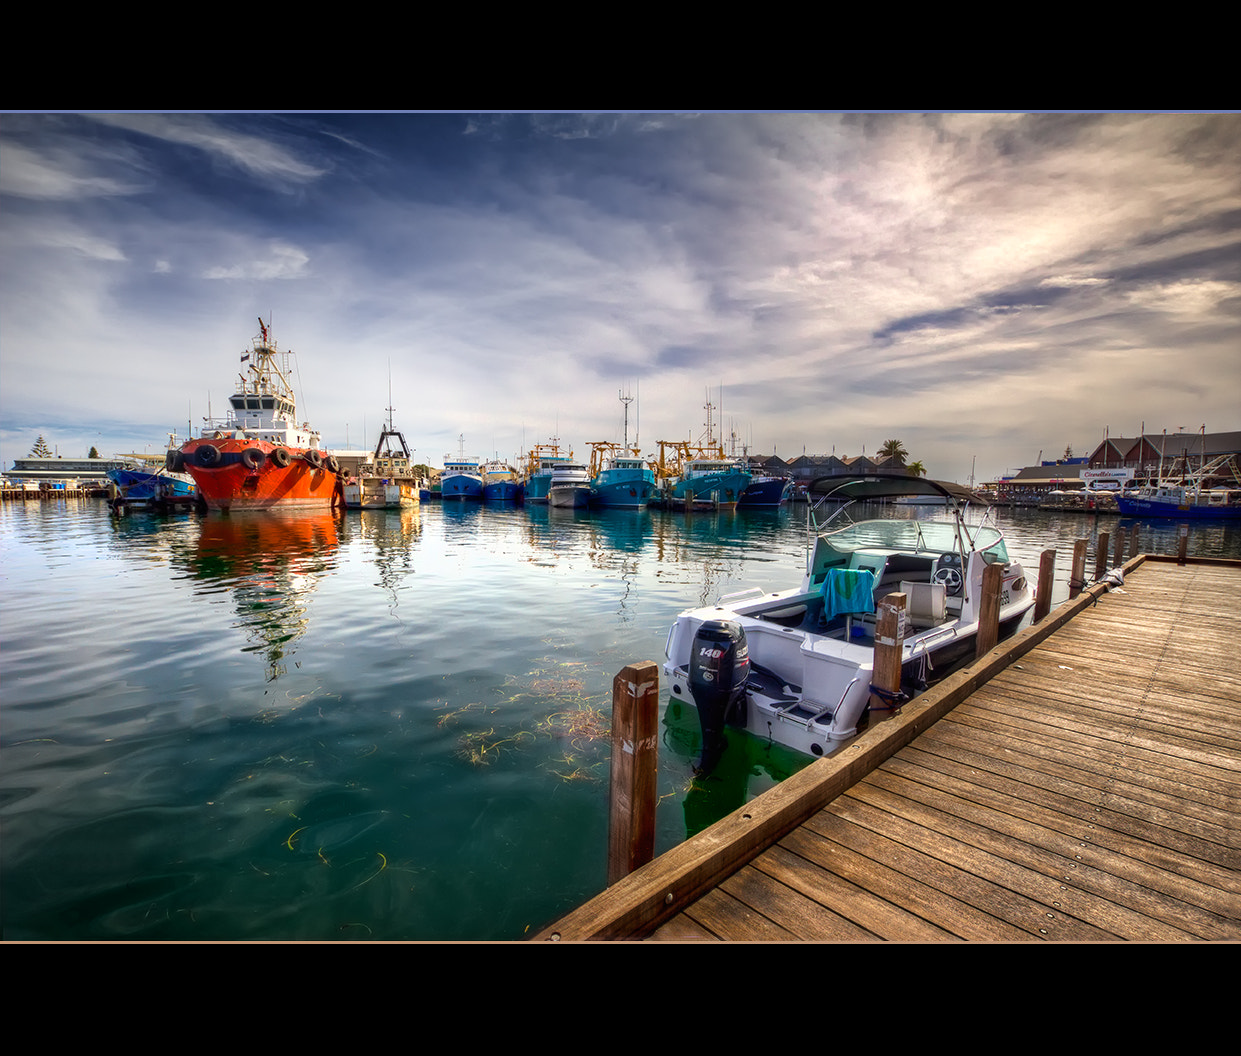 Photograph Boats - Fremantle Fishing Boat Harbour by Bianca K on 500px